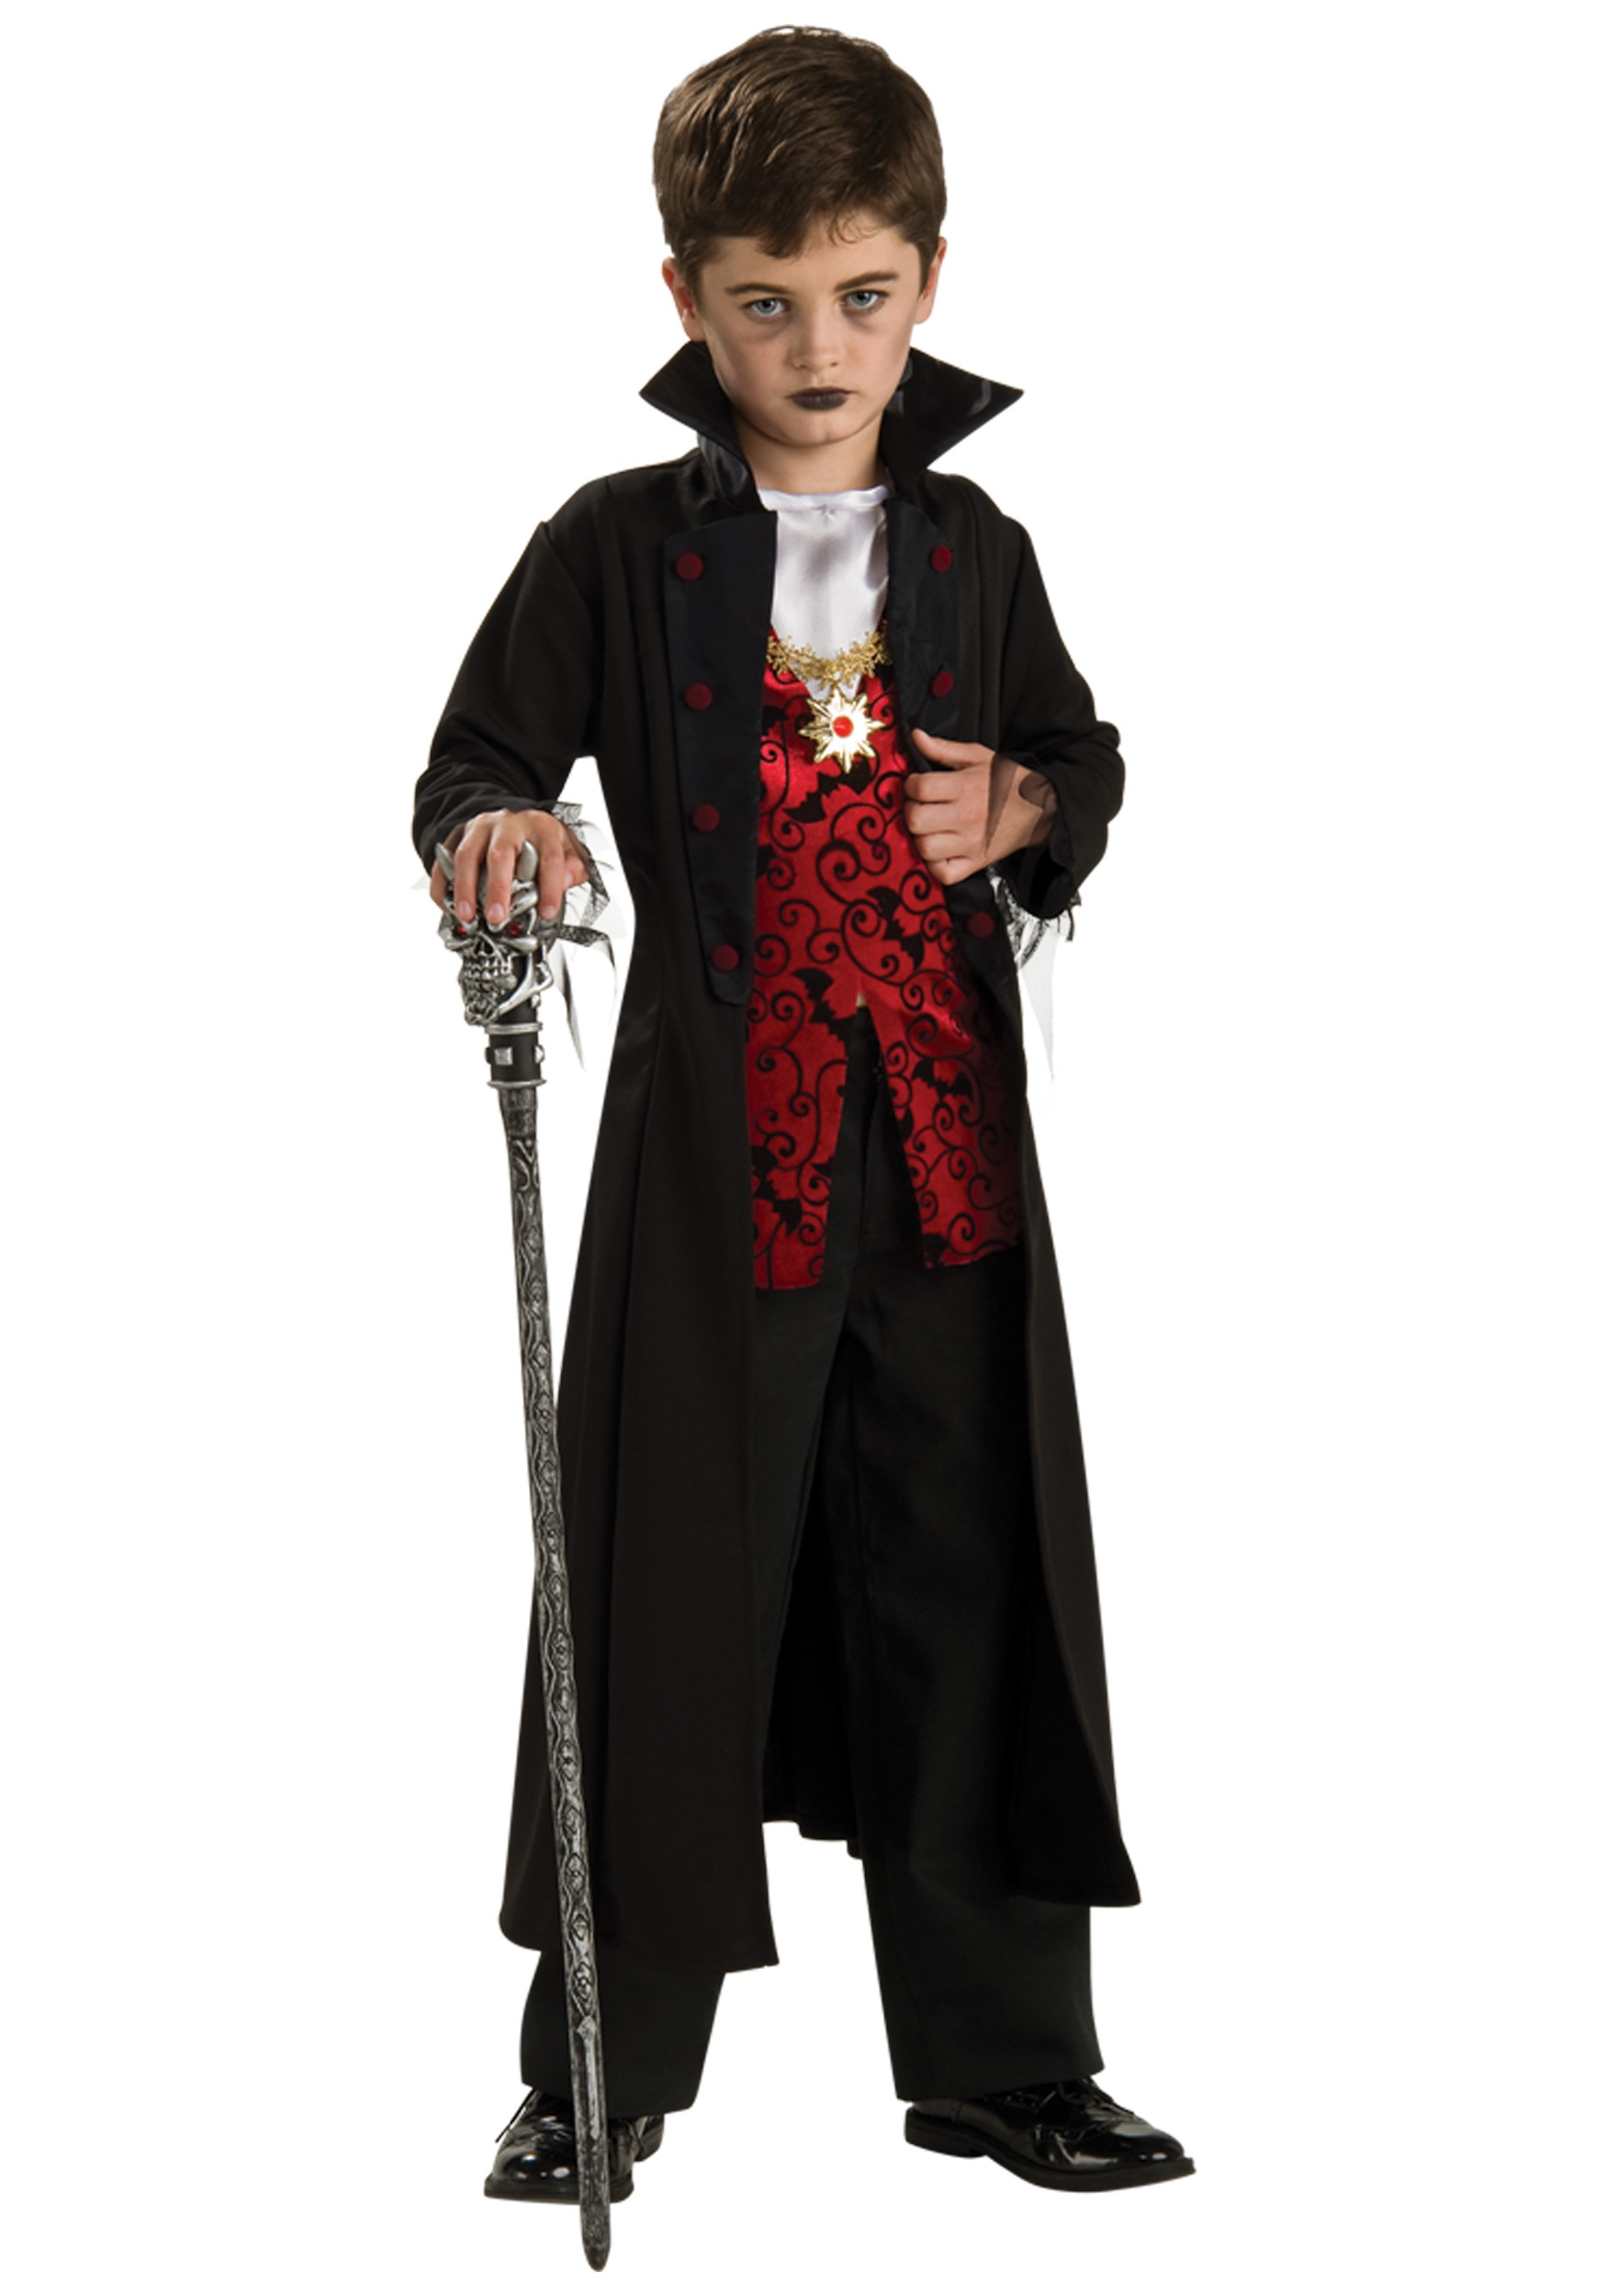 Vampire Costumes For Kids - HalloweenCostumes.com